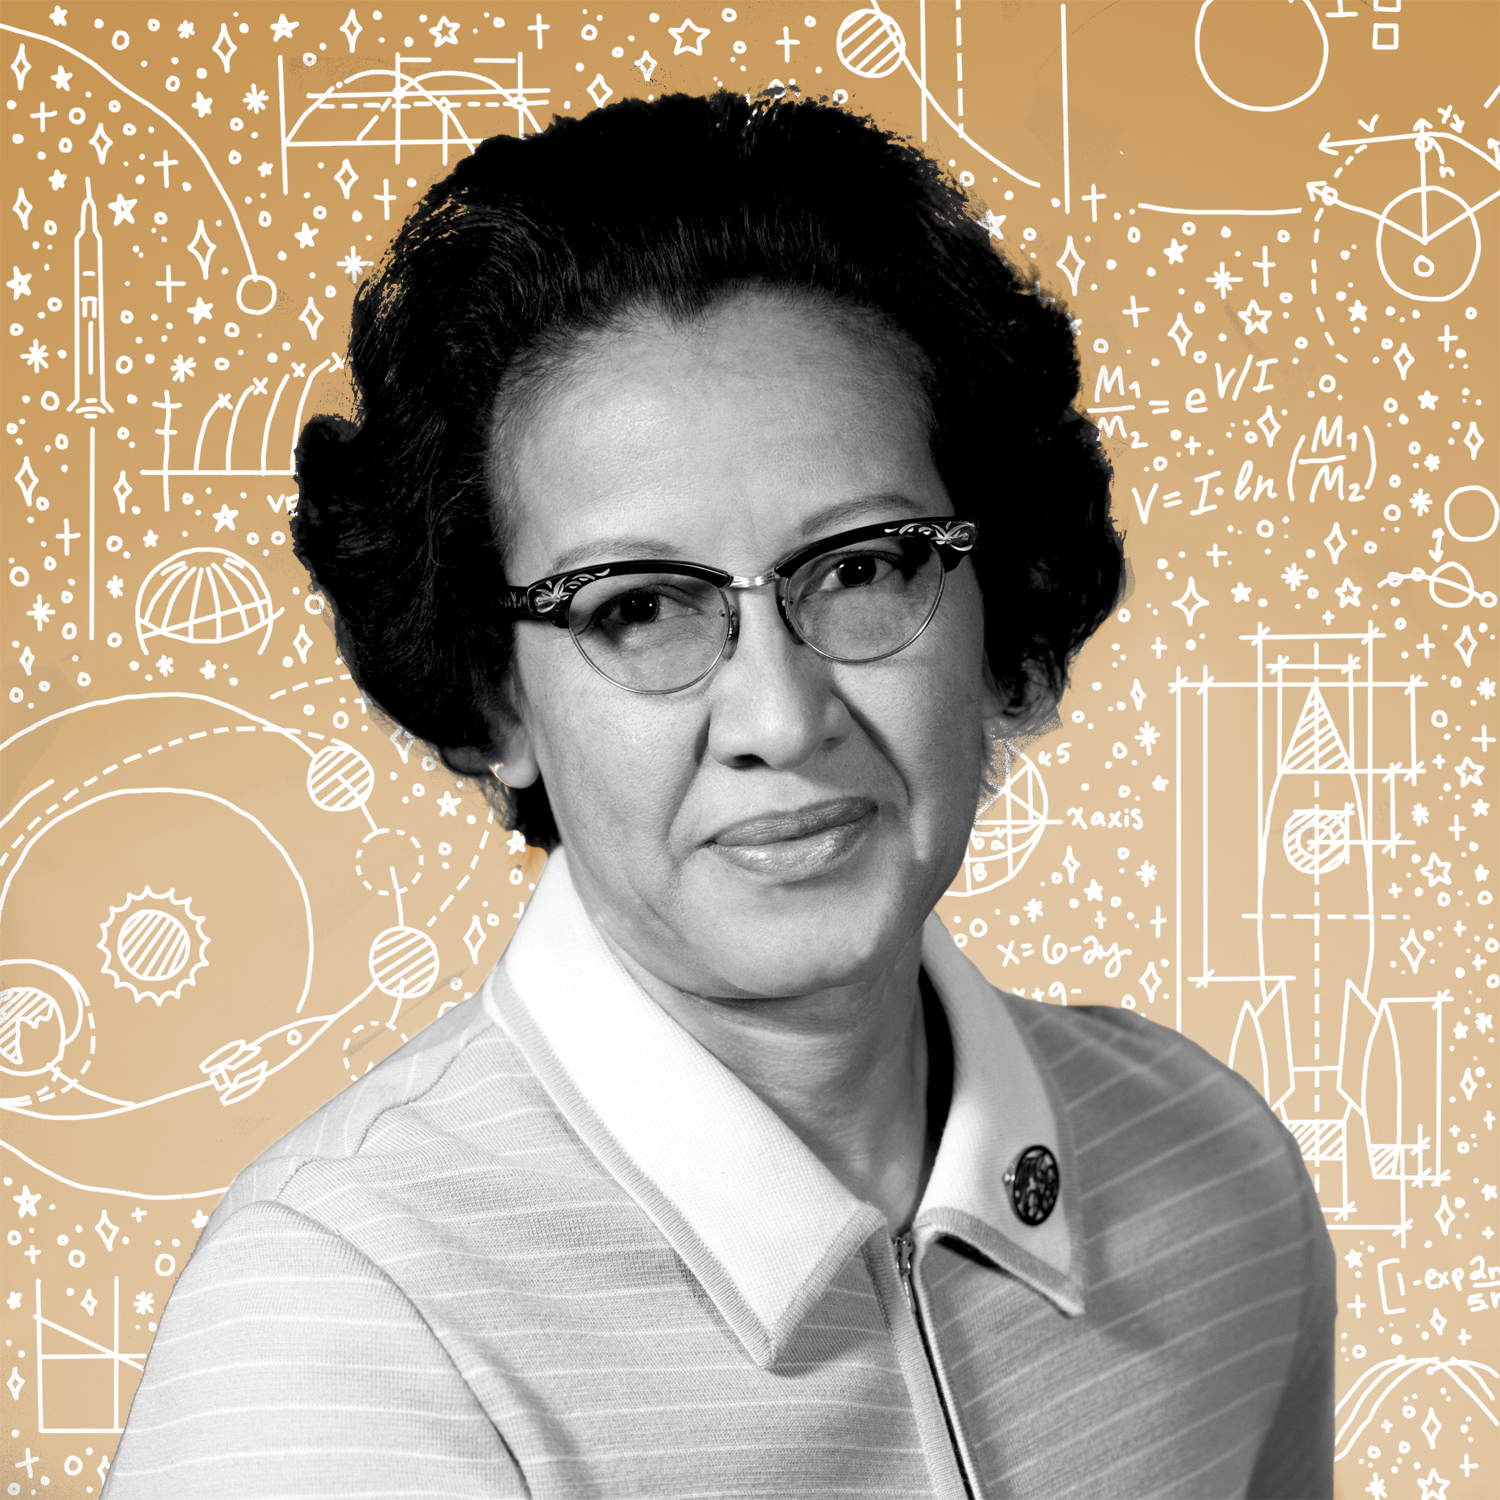 Katherine Johnson   She was a freshman in high school at the age of 10, and graduated from college at just 18. In her role on NASA's Space Task Group, Johnson calculated astronaut Alan Shepard's trajectory, allowing the US to successfully put a man into orbit around the Earth. Not only that, but Johnson also worked on the calculations that allowed the Apollo astronauts to return home from the Moon.